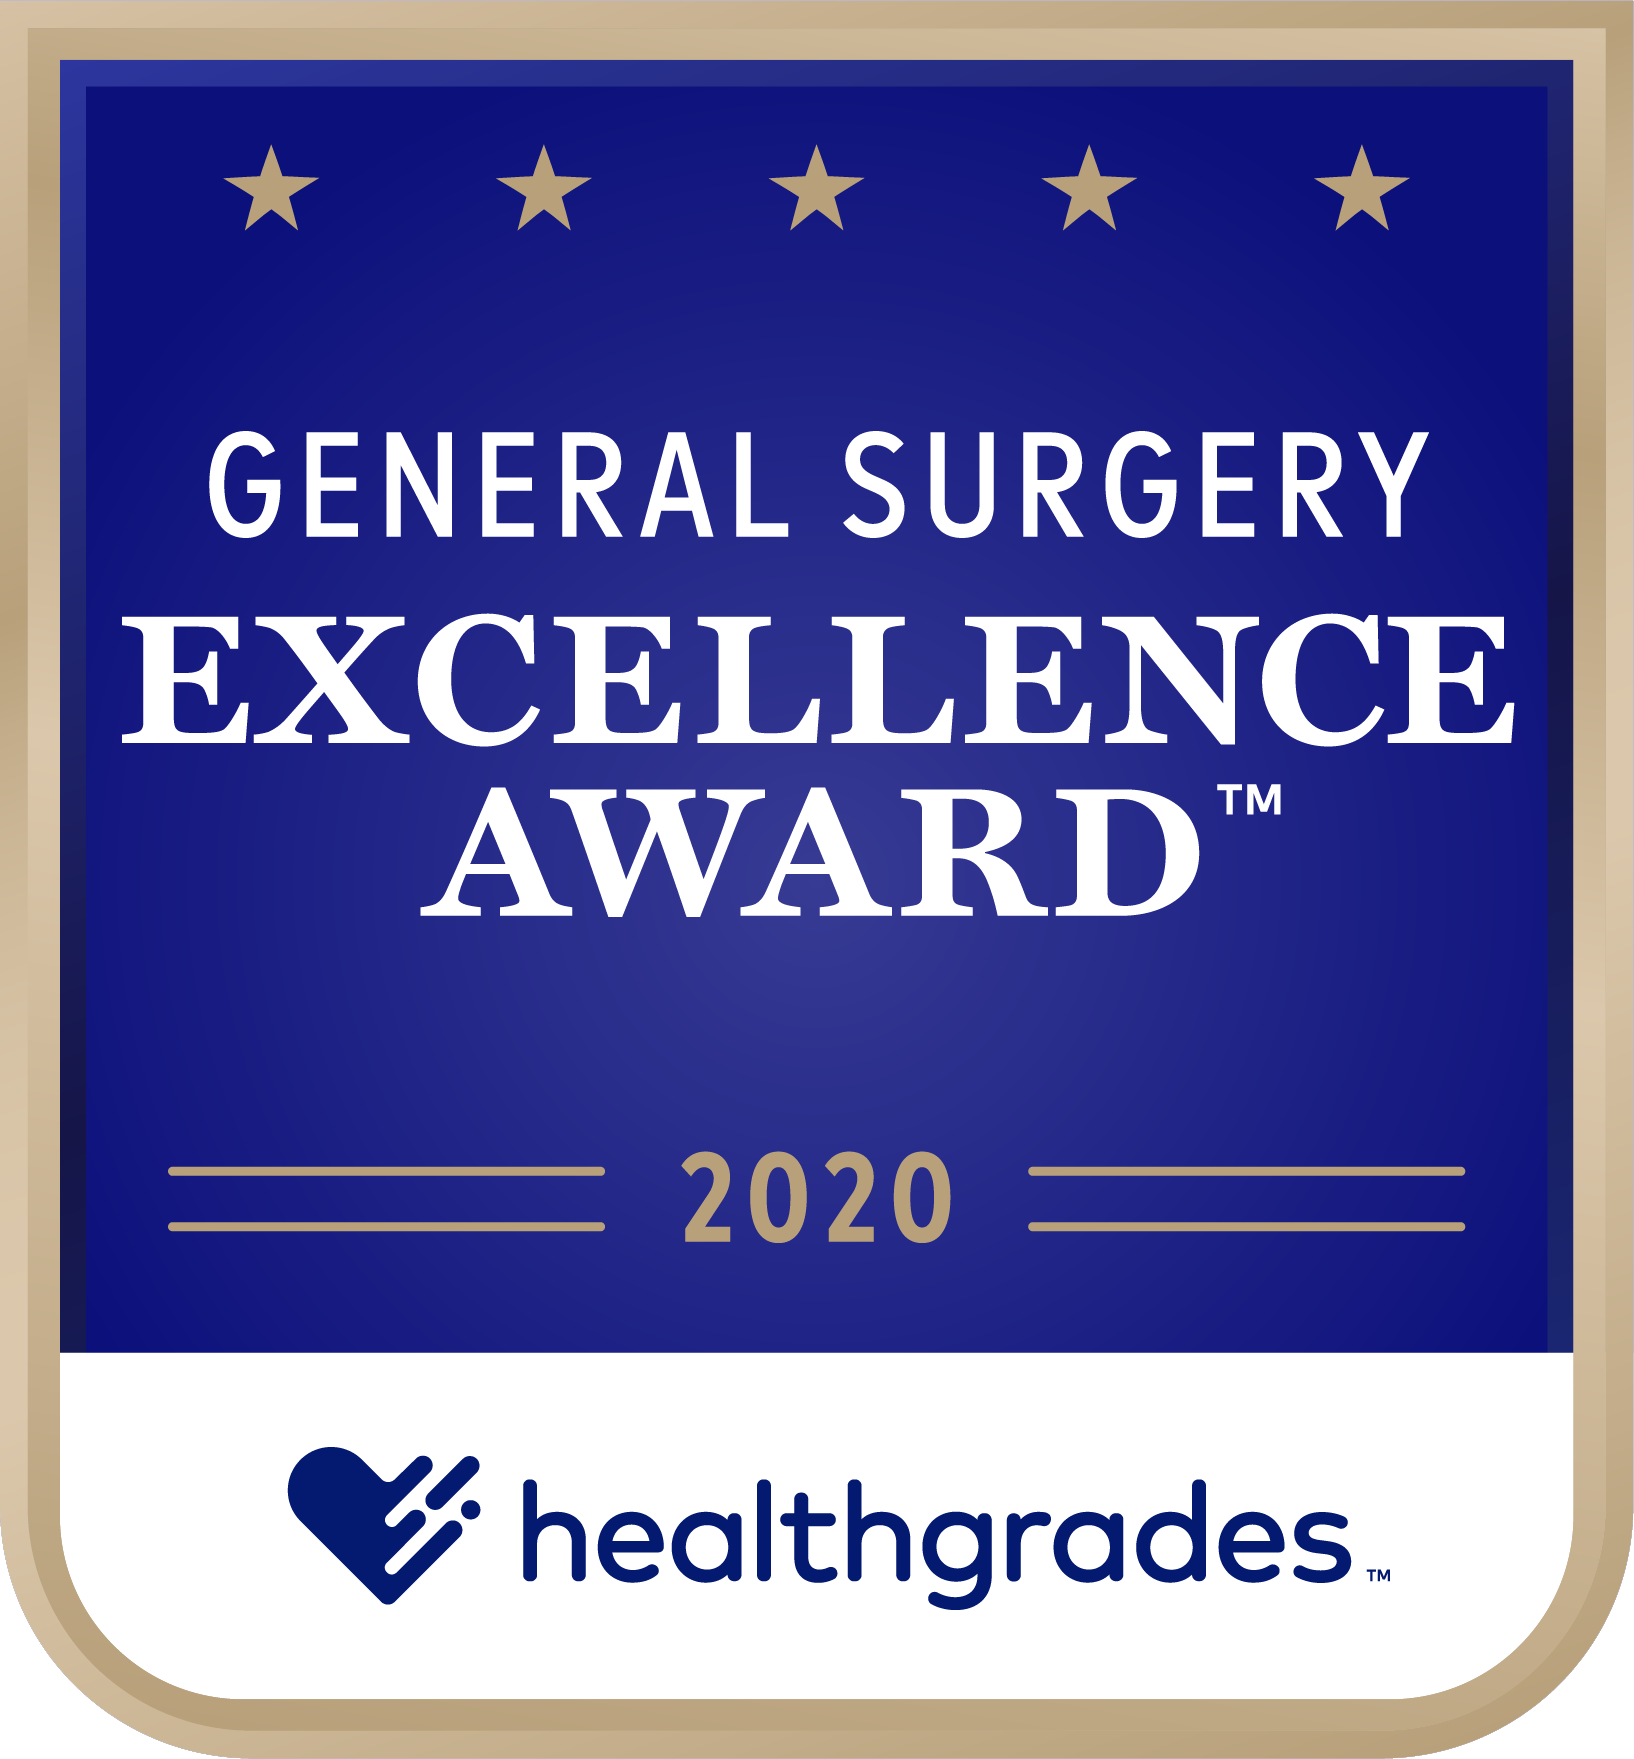 HG_General_Surgery_Award_Image_2020.png